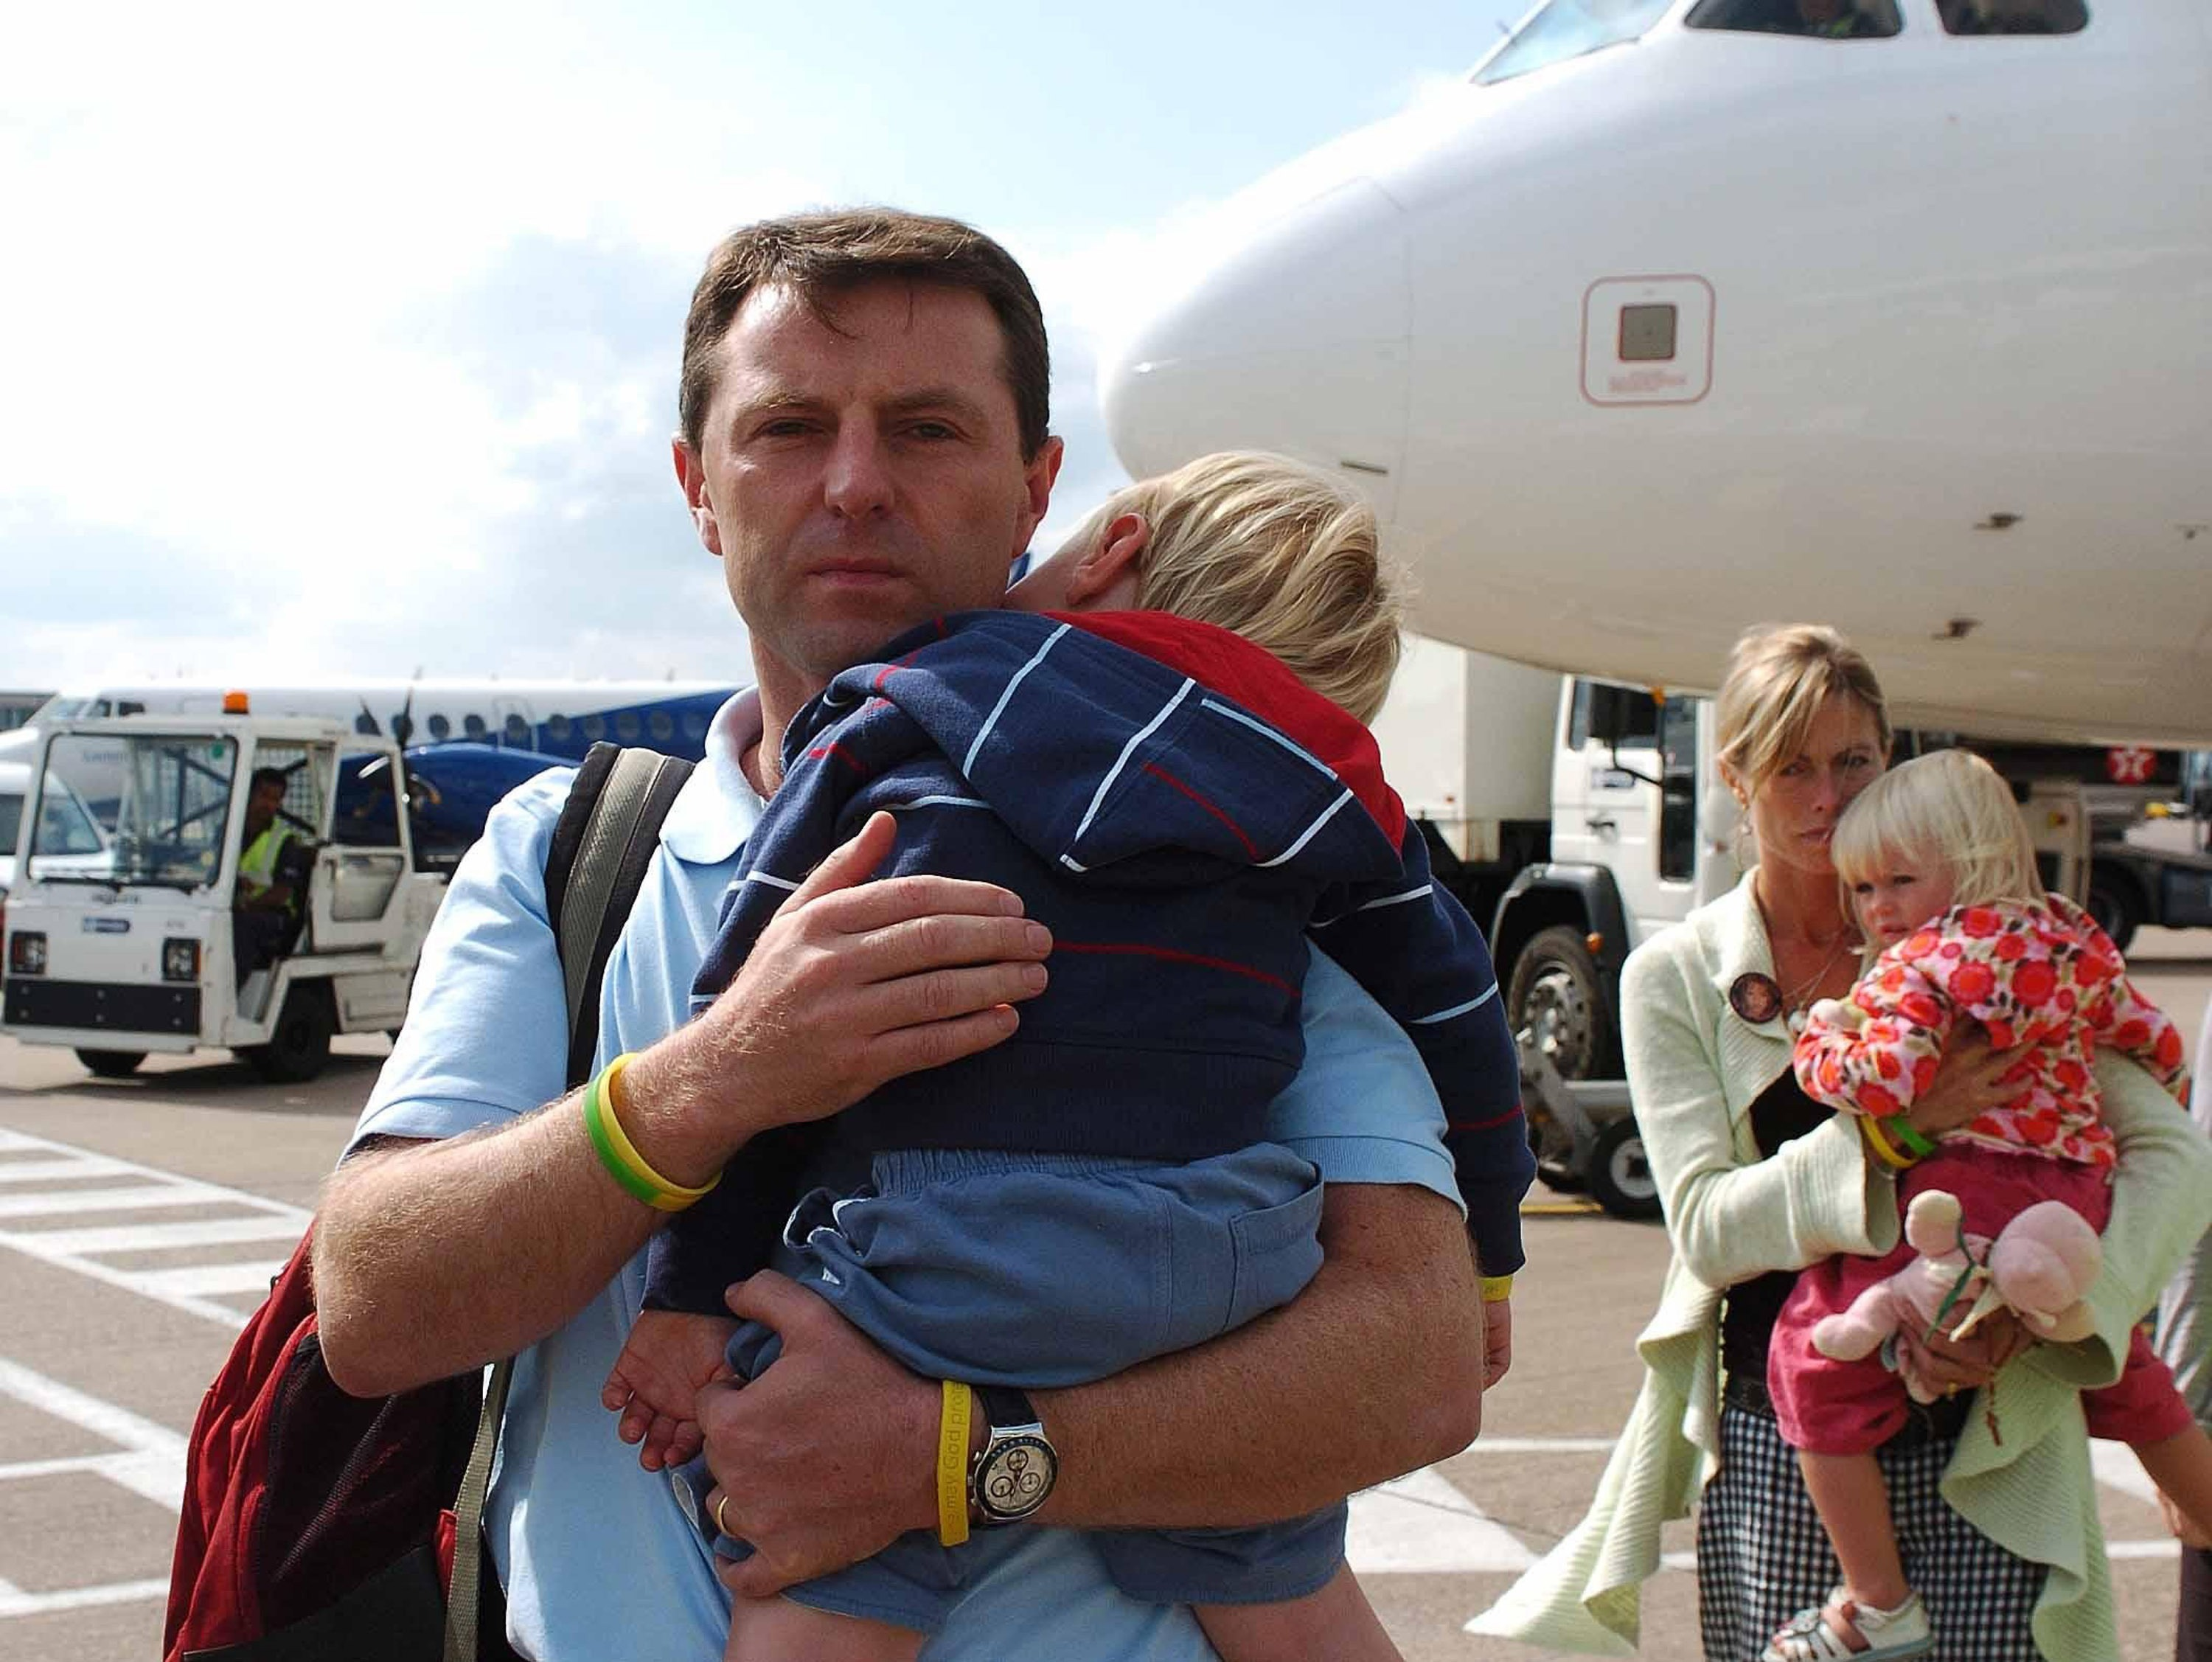 Kate and Gerry McCann the parents of missing four-year-old Madeleine McCann arrive back in the UK to East Midlands airport, after taking a flight from Faro airport on September 9, 2007 near Birmingham, England. The McCanns have been made formal suspects in the disappearance of their four-year-old daughter Madeleine, from the Praia da Luz, holiday apartment in the Algarve on May 3, 2007. No restrictions or bail conditions have been imposed on the couple as they return to the UK.